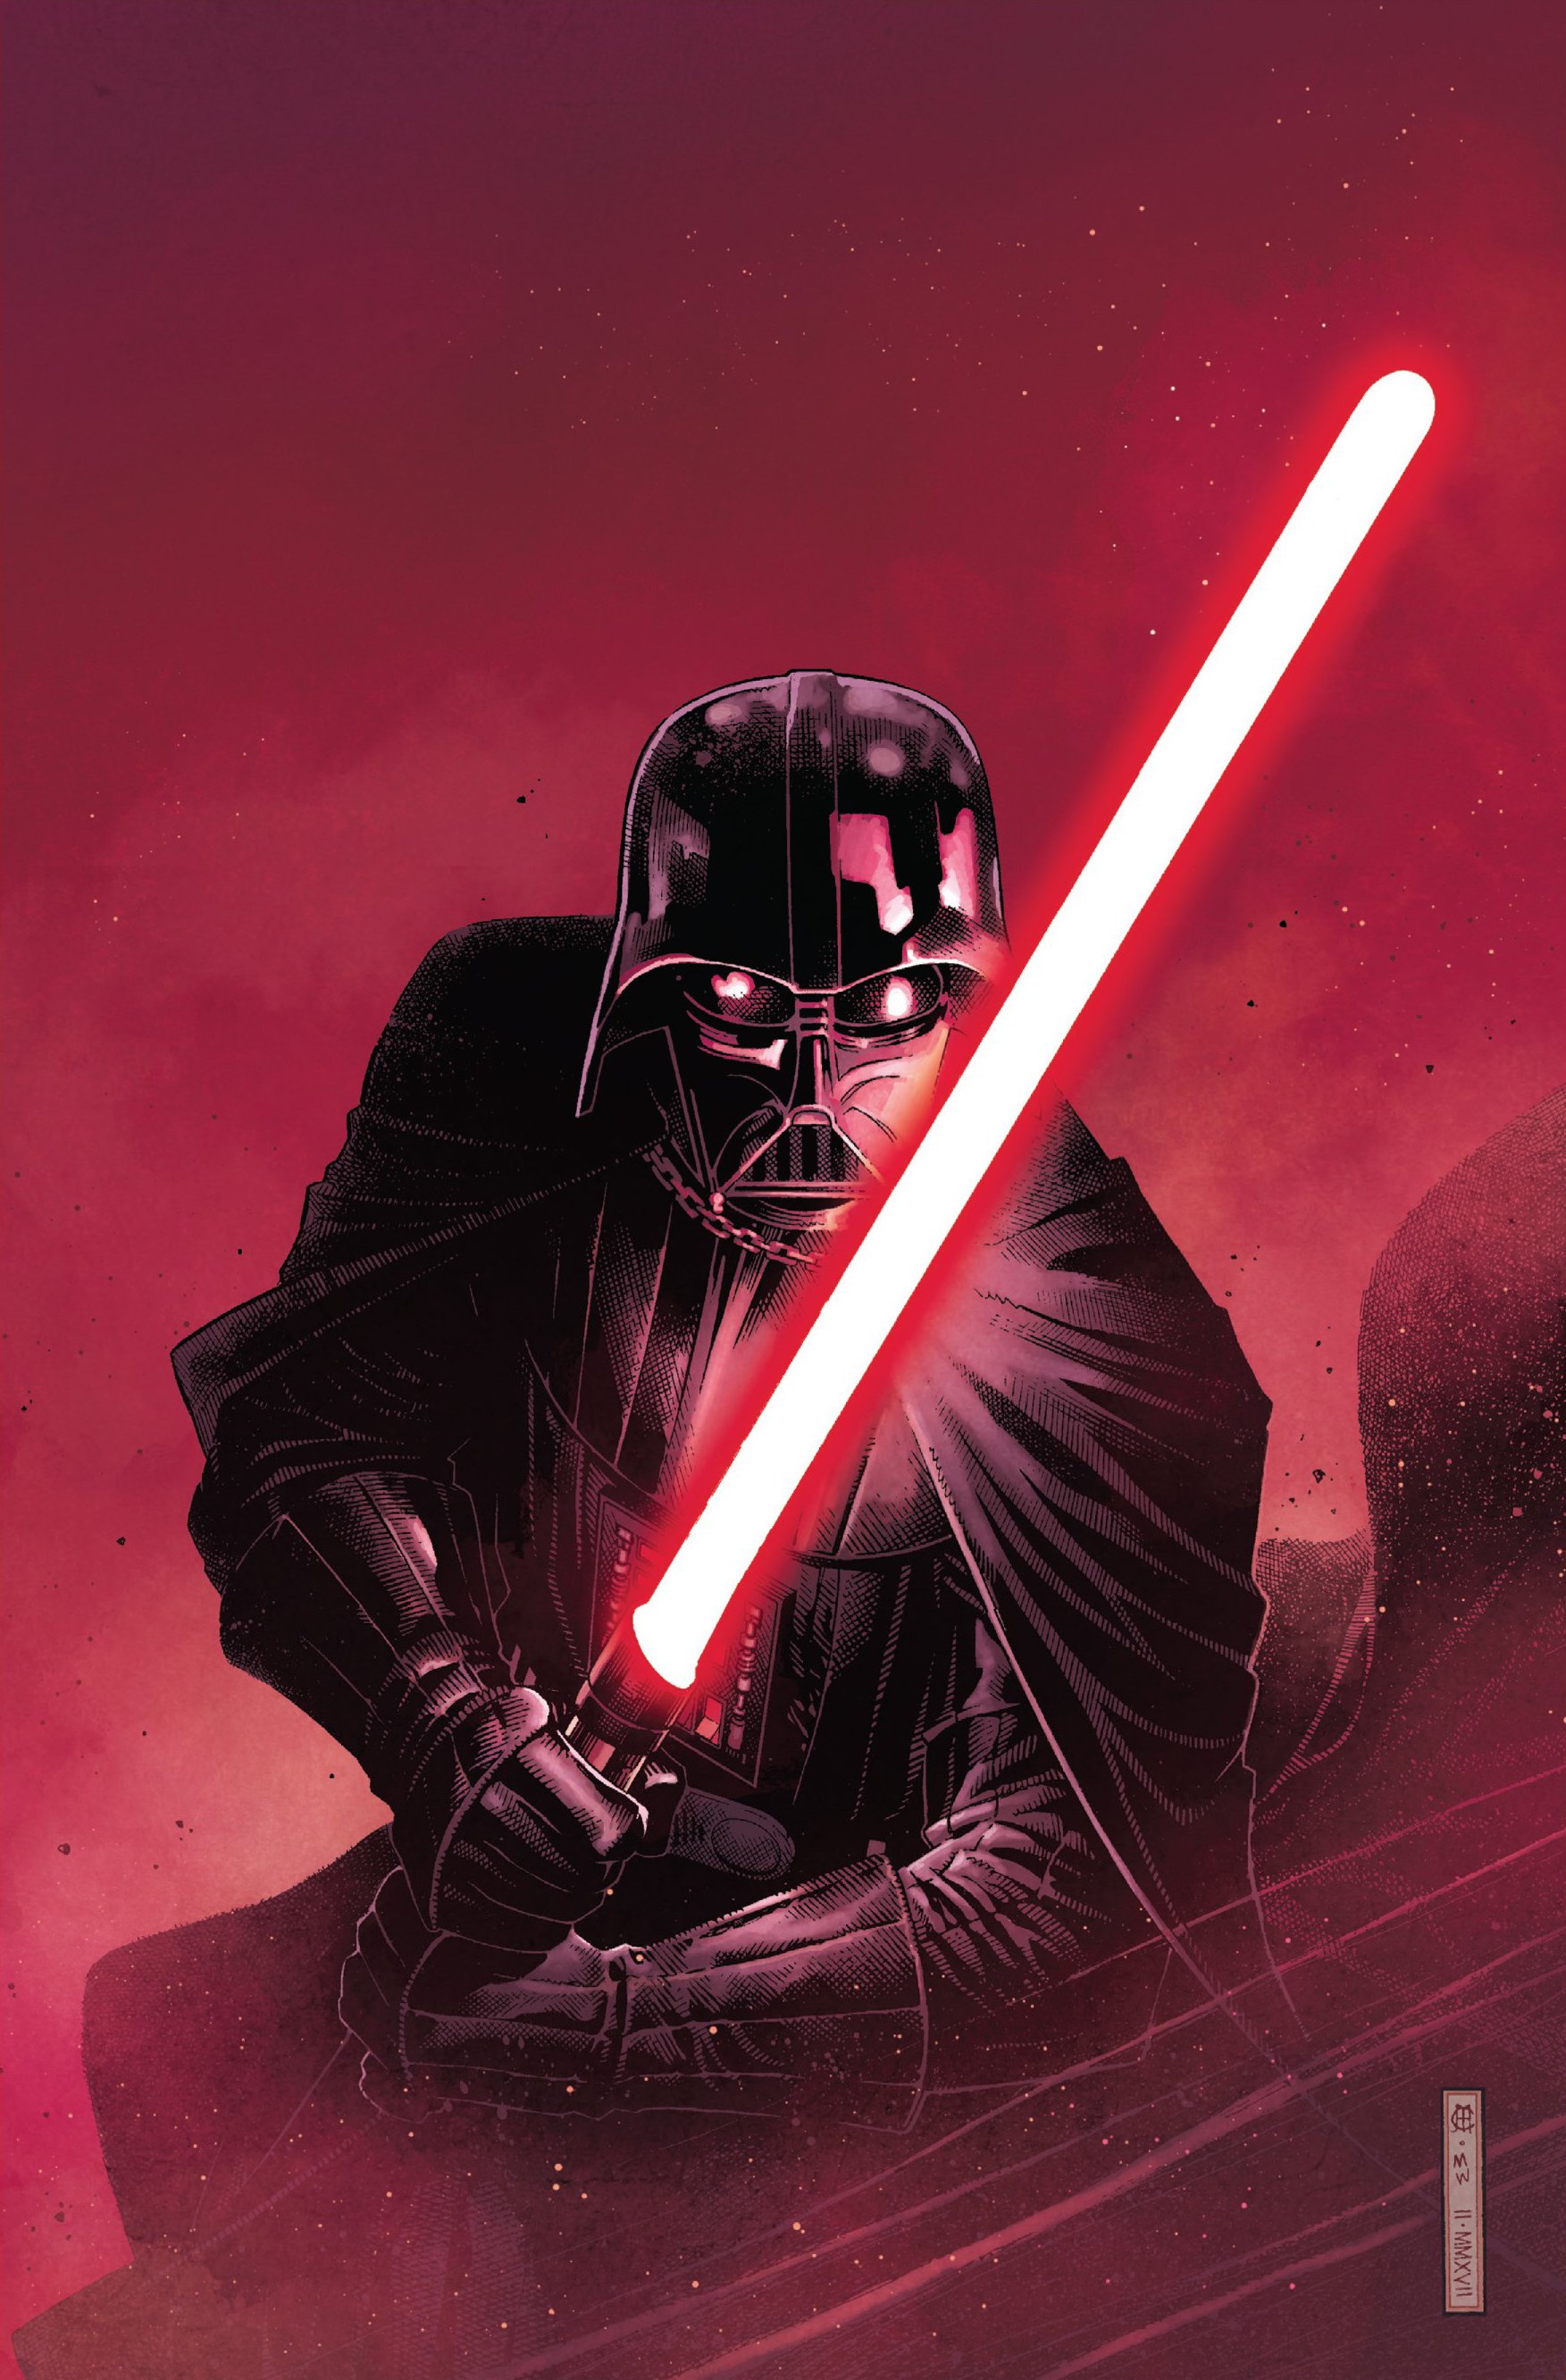 File:Darth Vader Dark Lord of the Sith 1 Textless.jpg